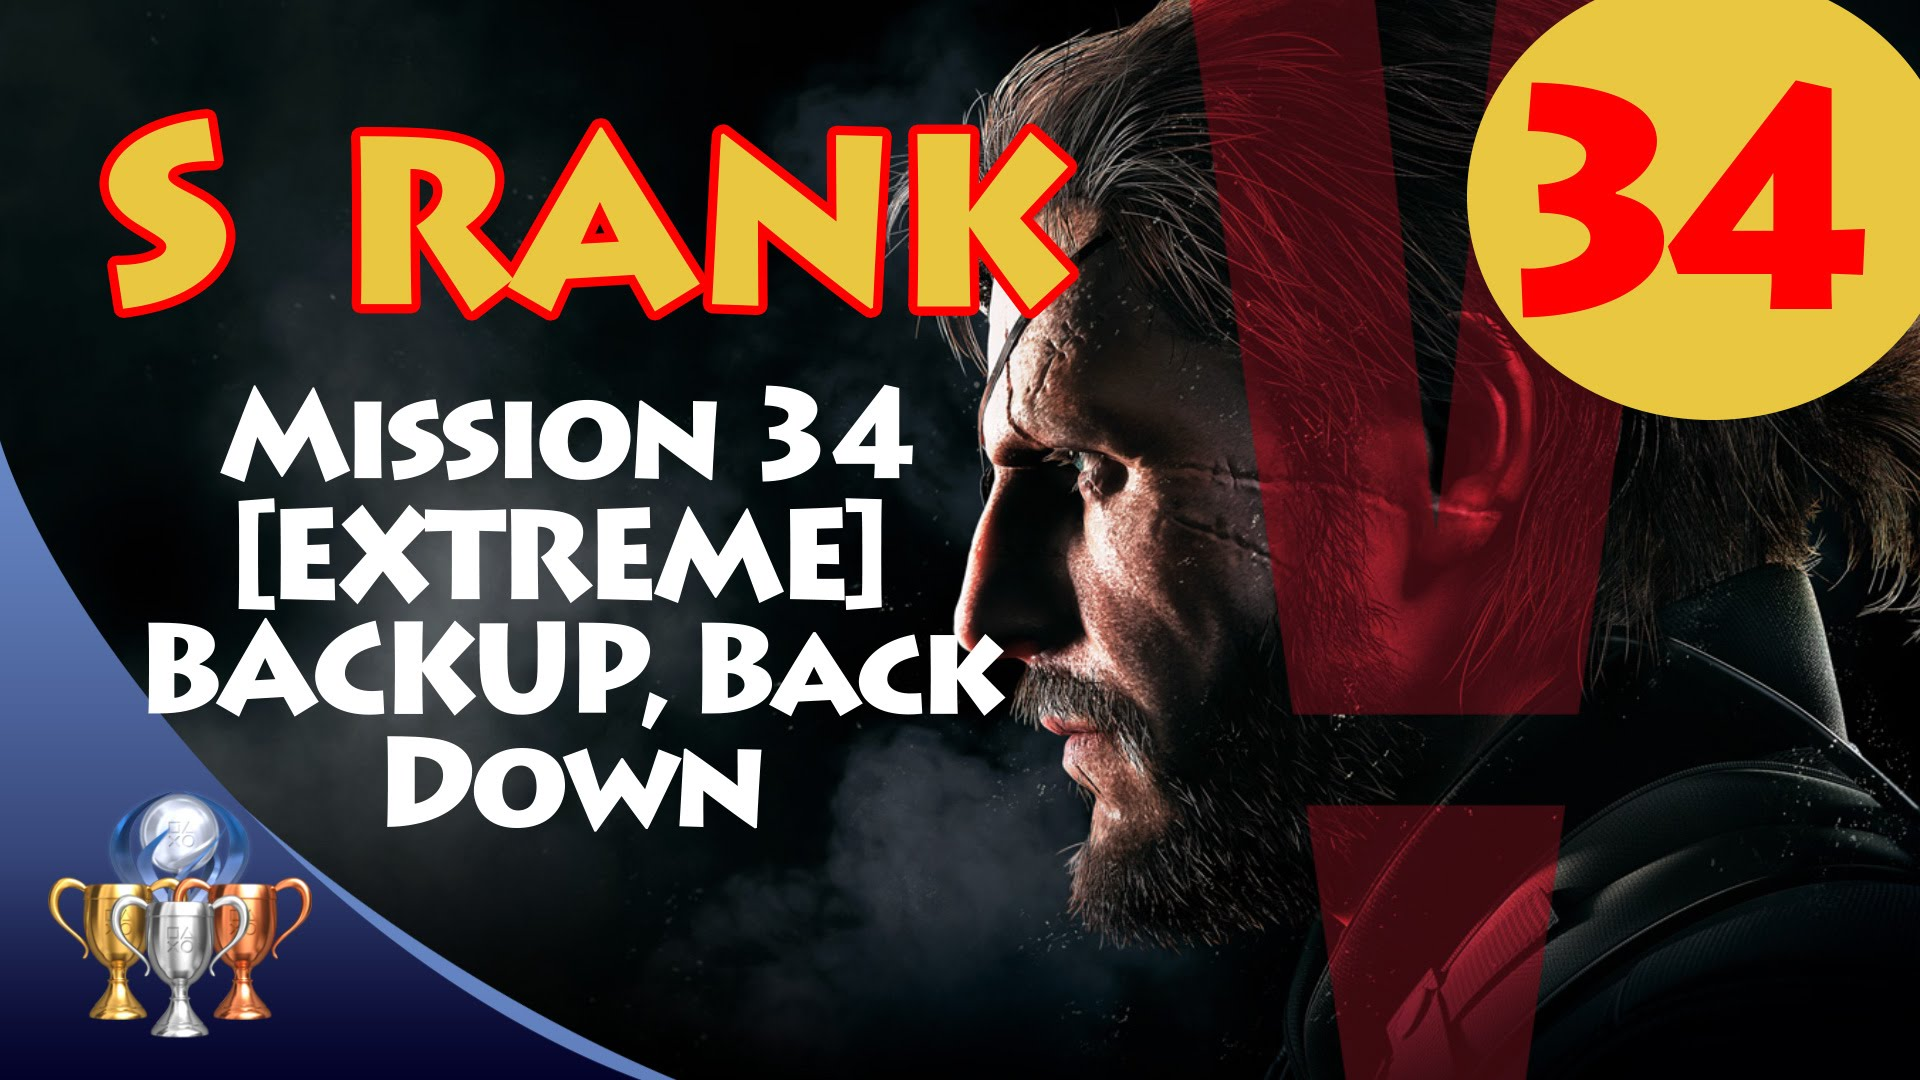 Metal Gear Solid V The Phantom Pain S Rank Walkthrough Mission 34 Ps4metal Reg 2 Extreme Backup Back Down Ps4trophies Gaming